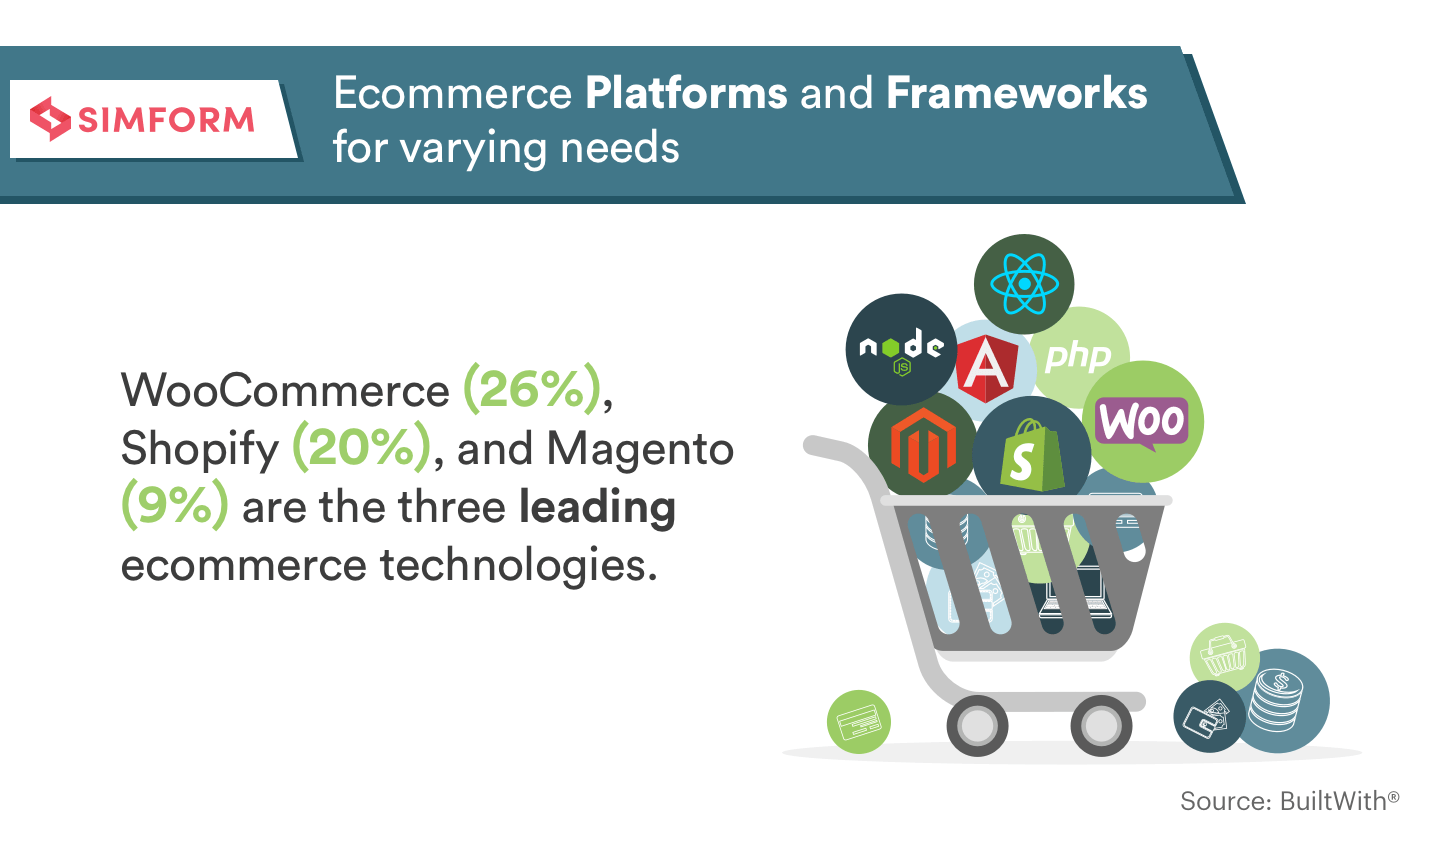 Ecommerce platforms and frameworks for varying needs